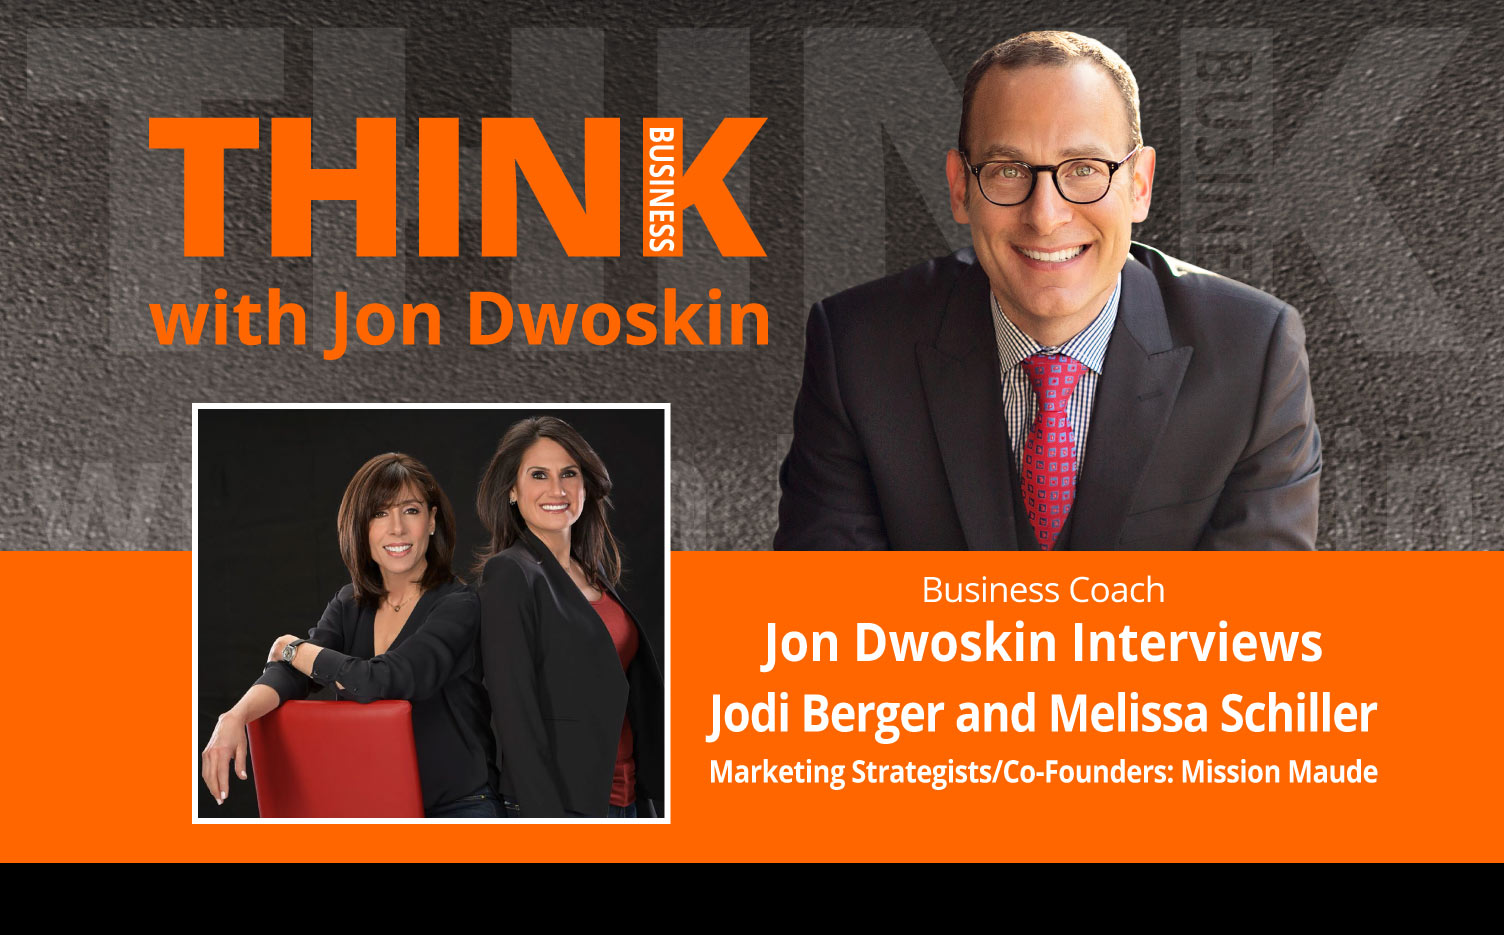 THINK Business Podcast: Jon Dwoskin Interviews Jodi Berger and Melissa Schiller, Marketing Strategists/Co-Founders: Mission Maude